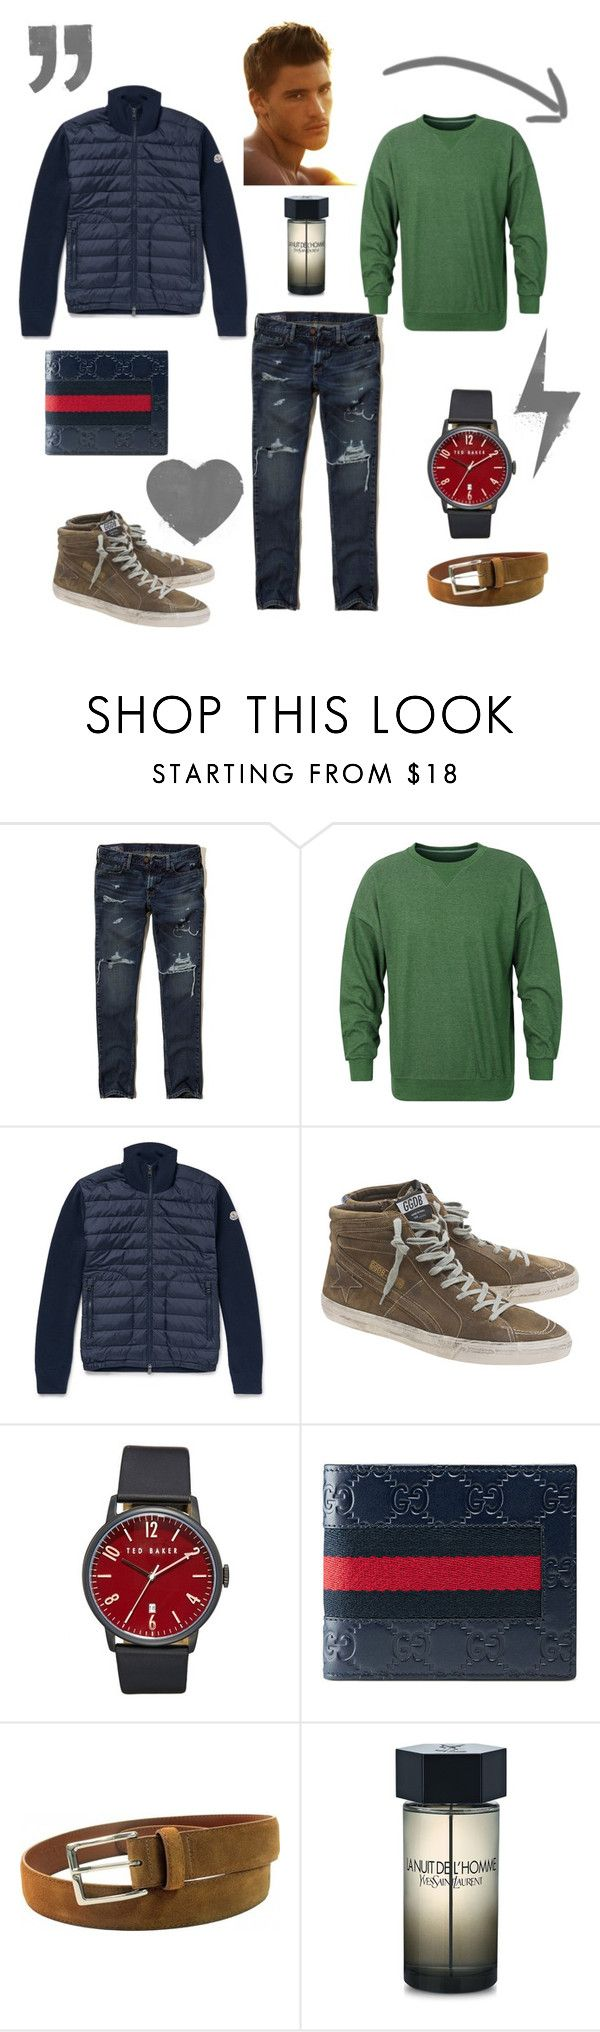 menlook by malishevan on Polyvore featuring Moncler, Hollister Co., Golden Goose, Ted Baker, Gucci, Alden, Yves Saint Laurent, men's fashion and menswear